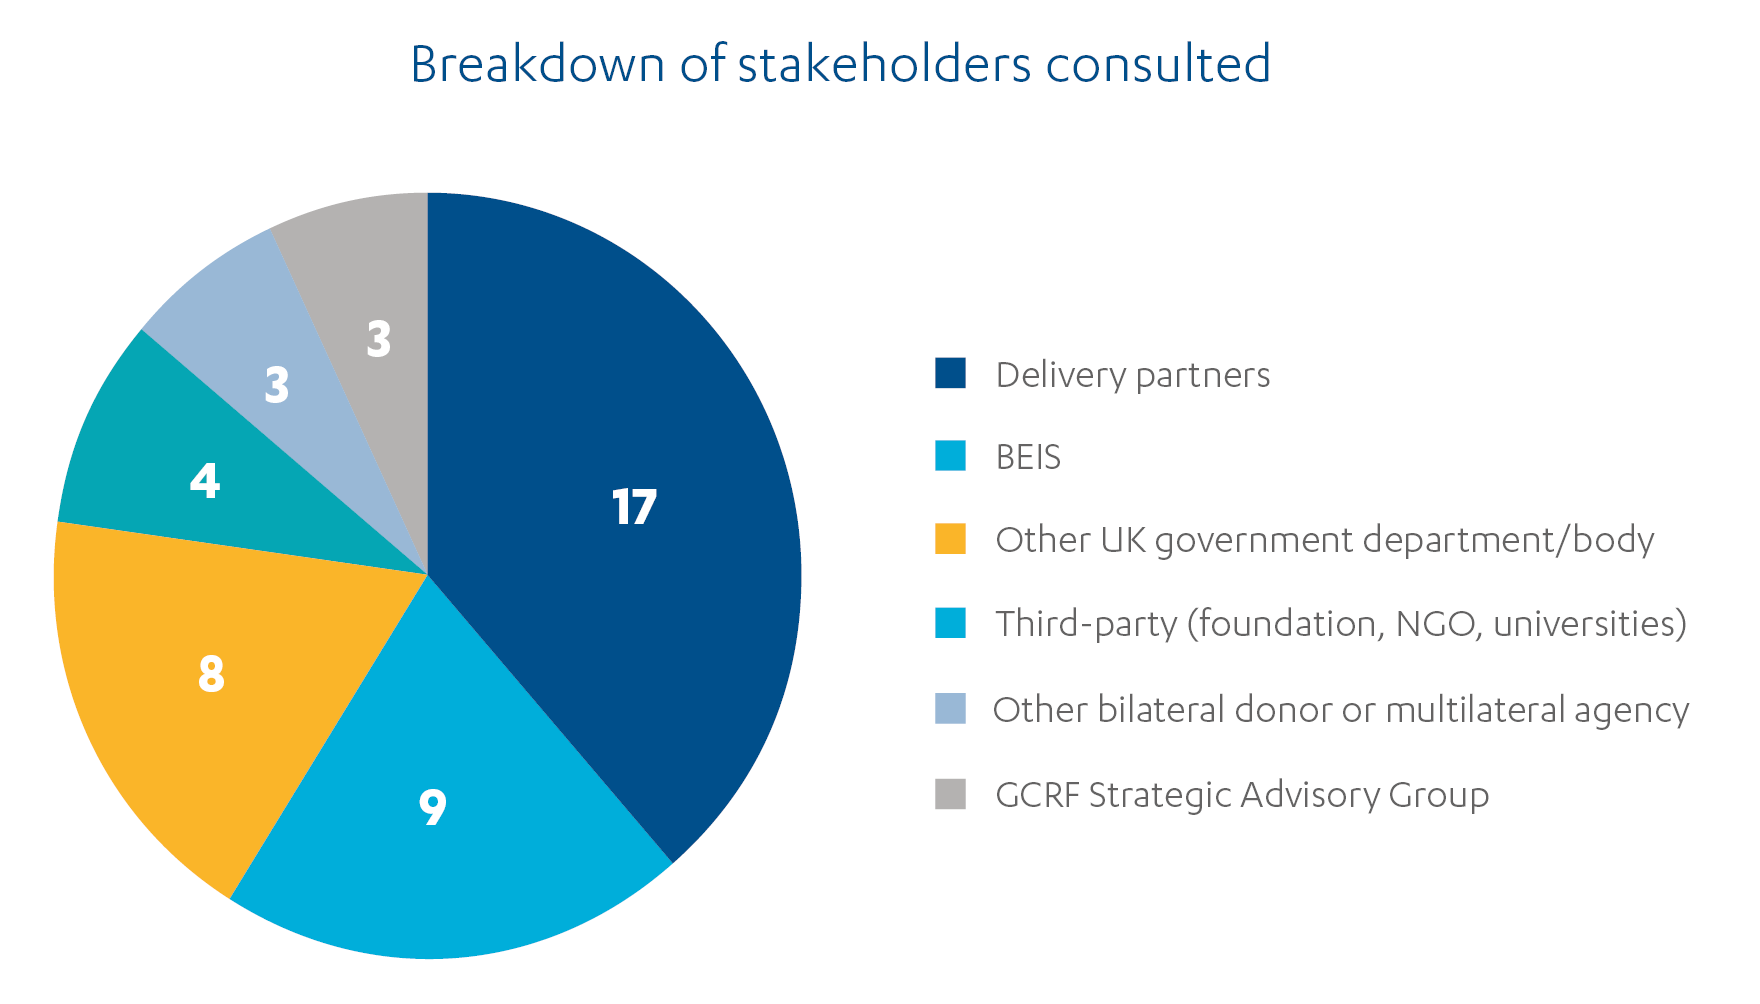 Pie chart showing breakdown of stakeholders consulted